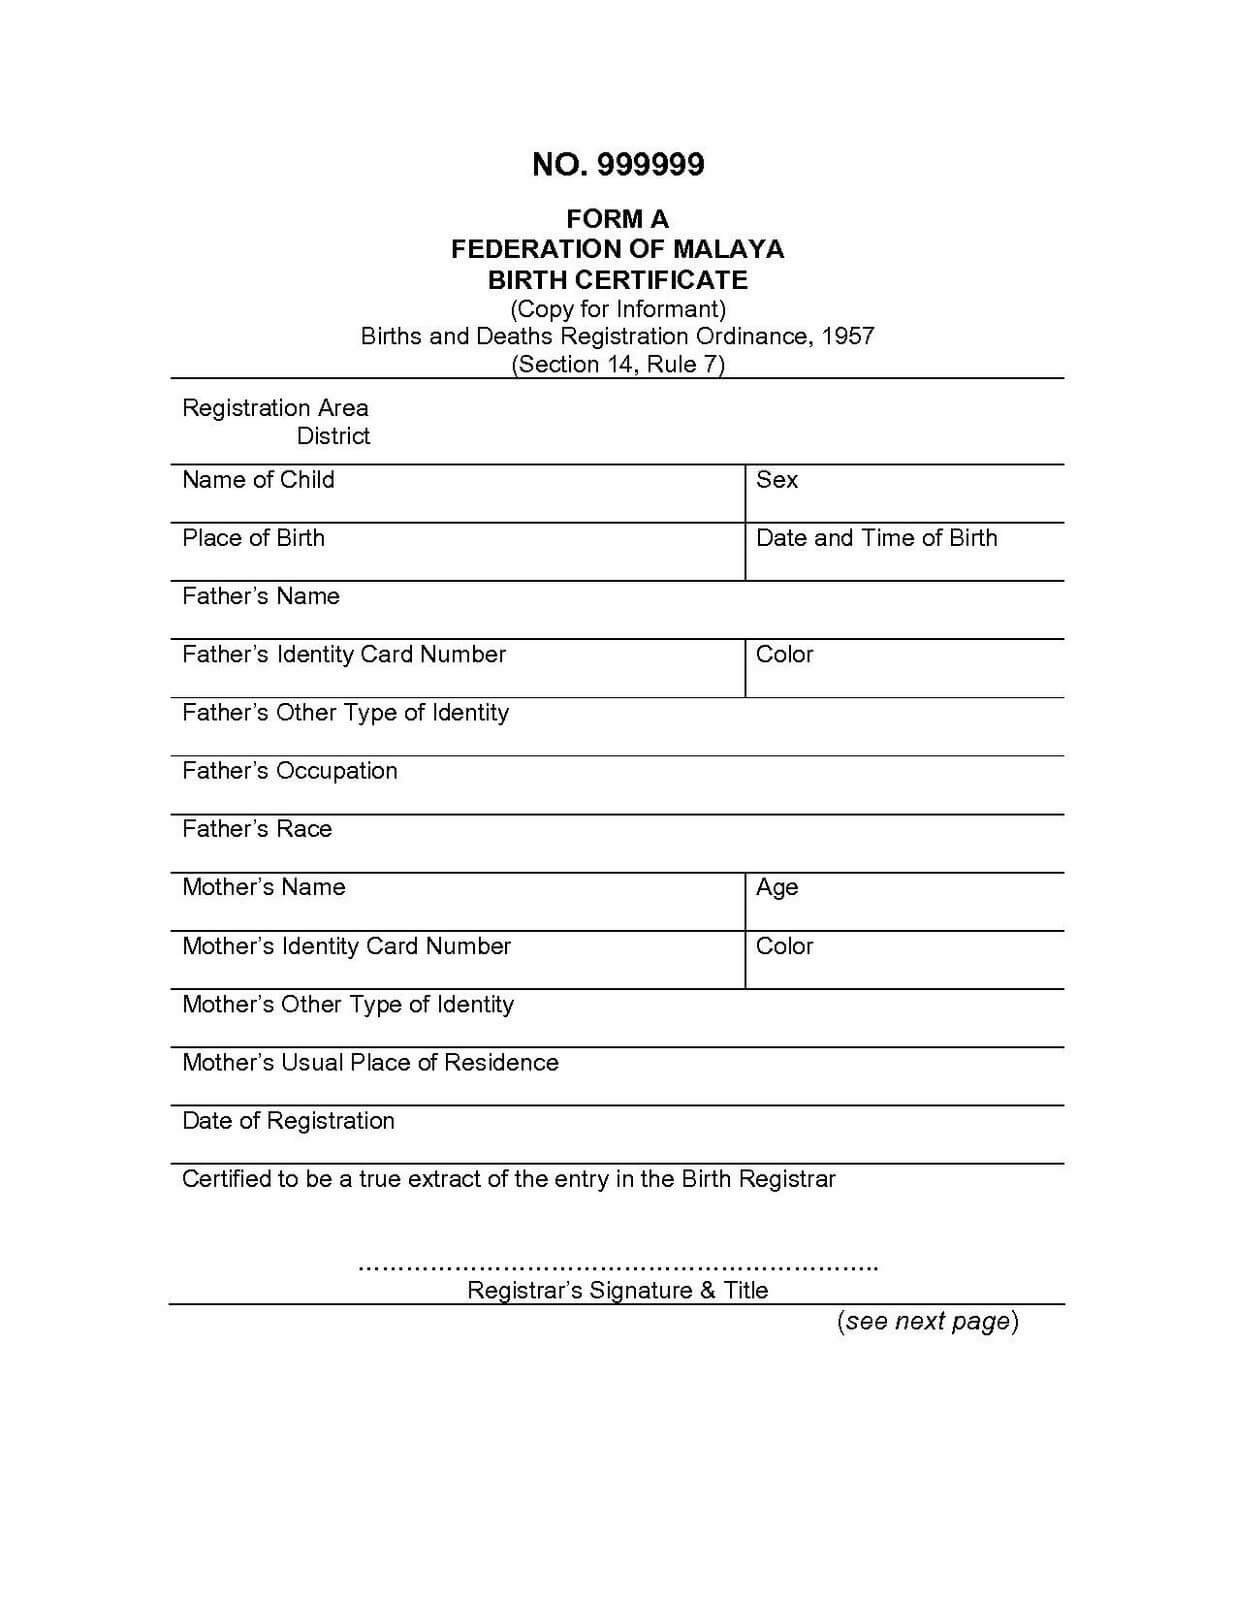 Spanish To English Birth Certificate Translation Template Throughout Marriage Certificate Translation From Spanish To English Template